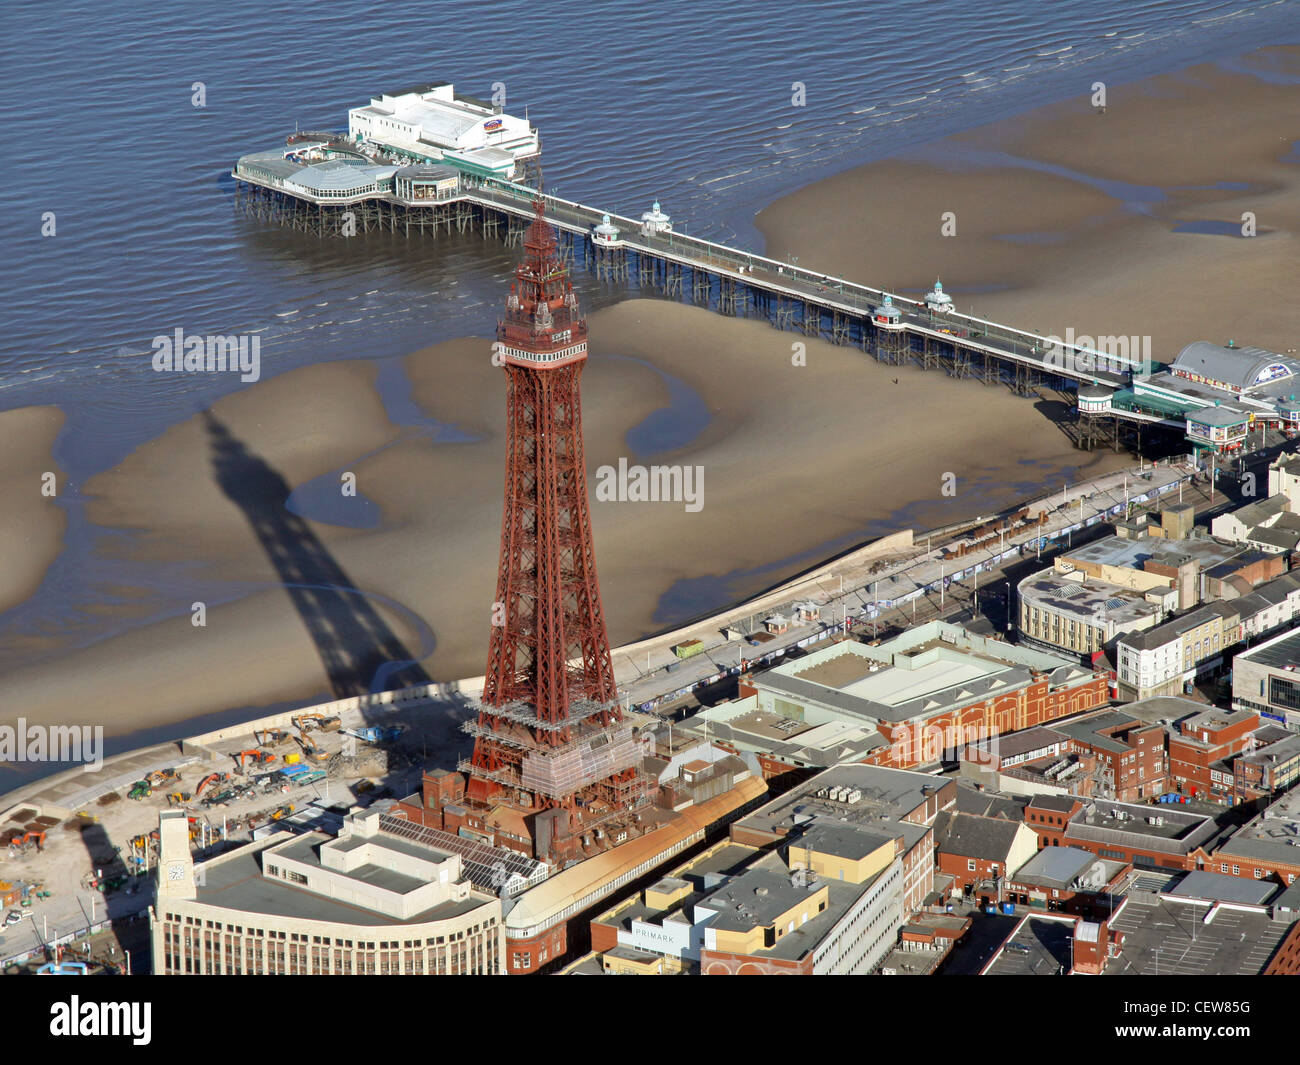 Aerial image of Blackpool Tower & Blackpool Pier with seafront - Stock Image